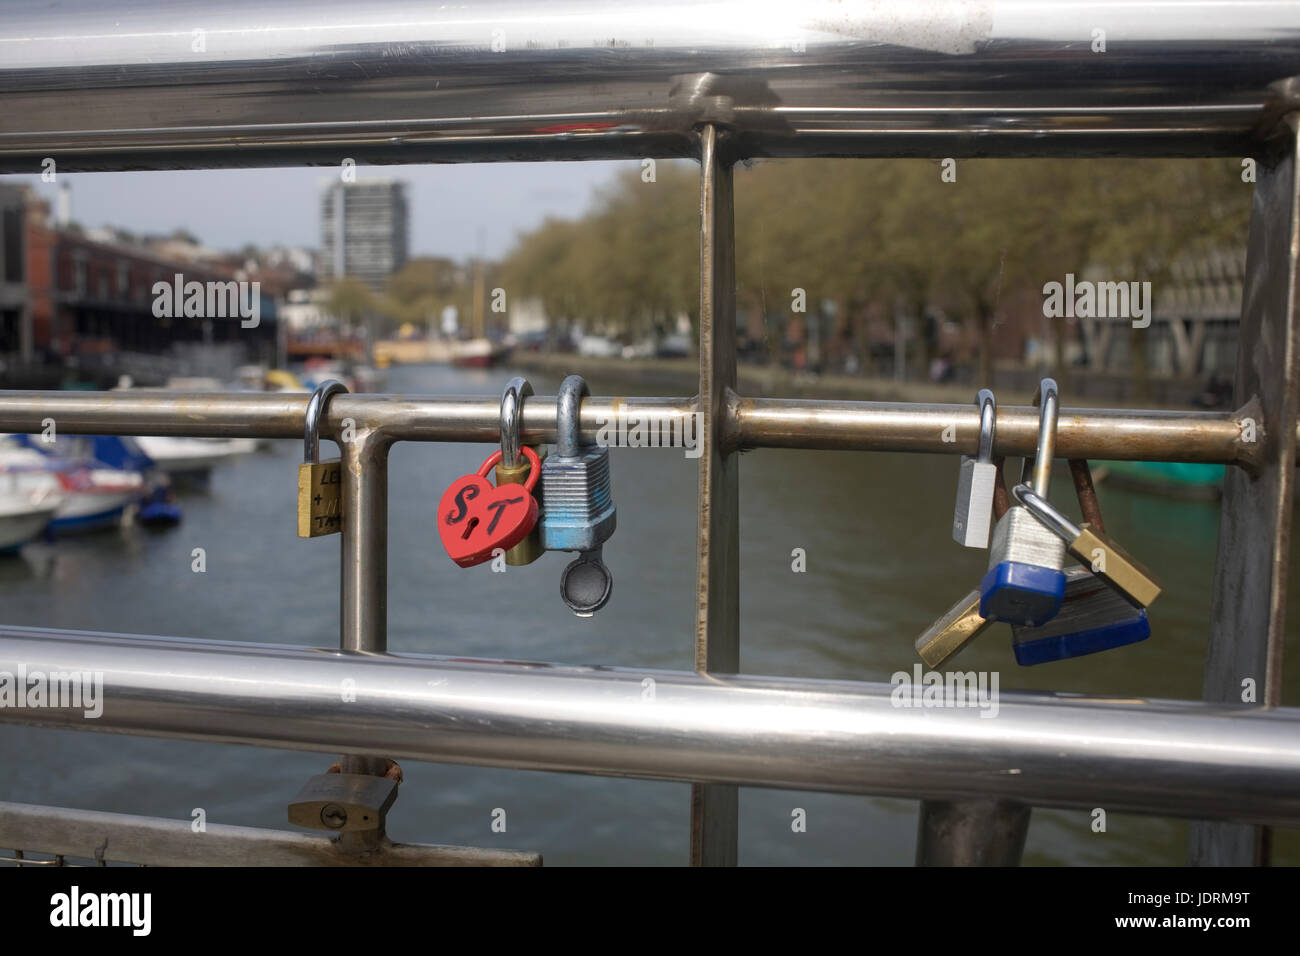 Footbridge in Bristol harbour with padlocks chained to metal railings as lovers' symbols - Stock Image